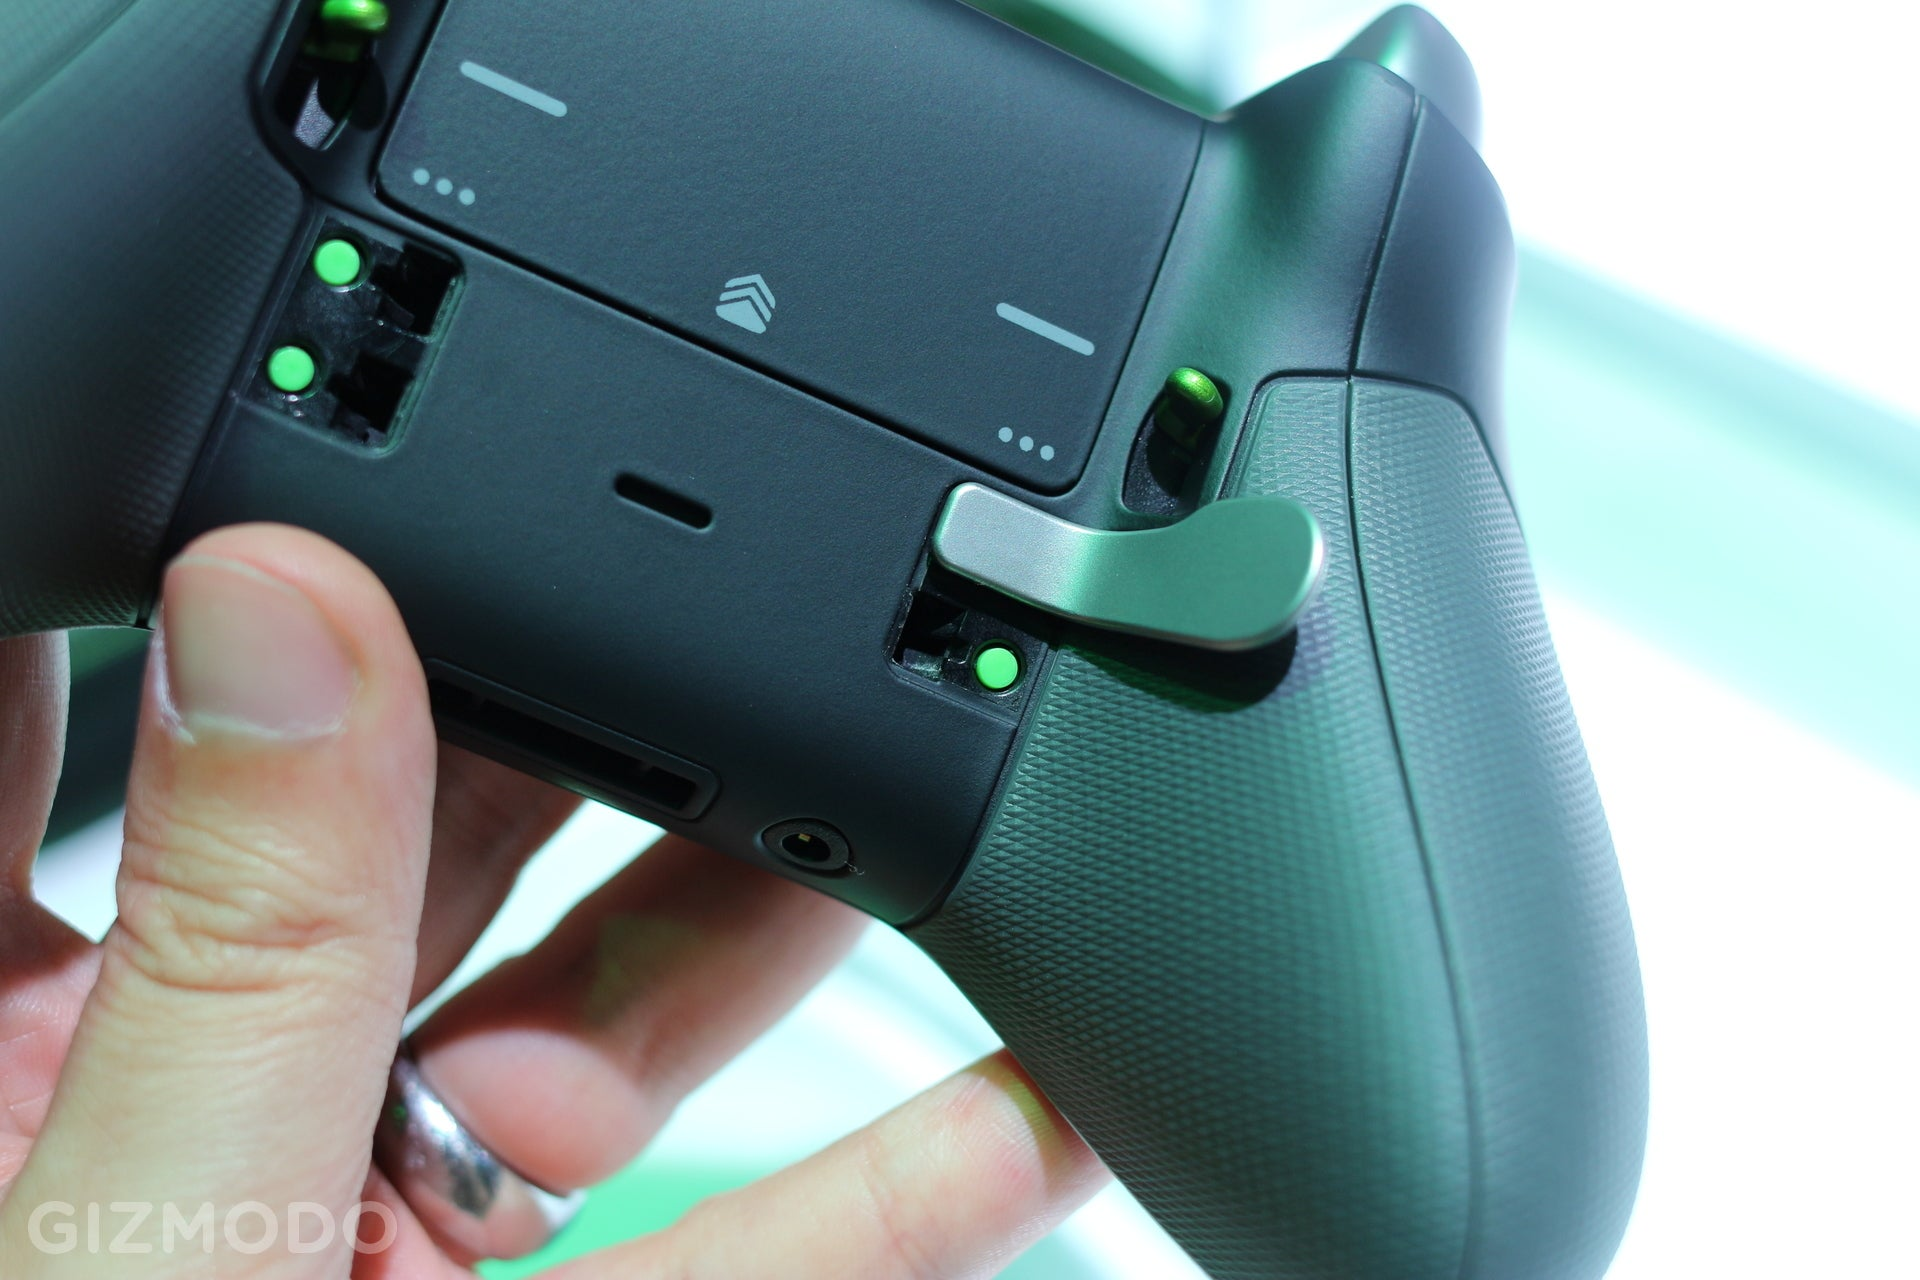 So This Is What a $US150 Xbox Controller Feels Like